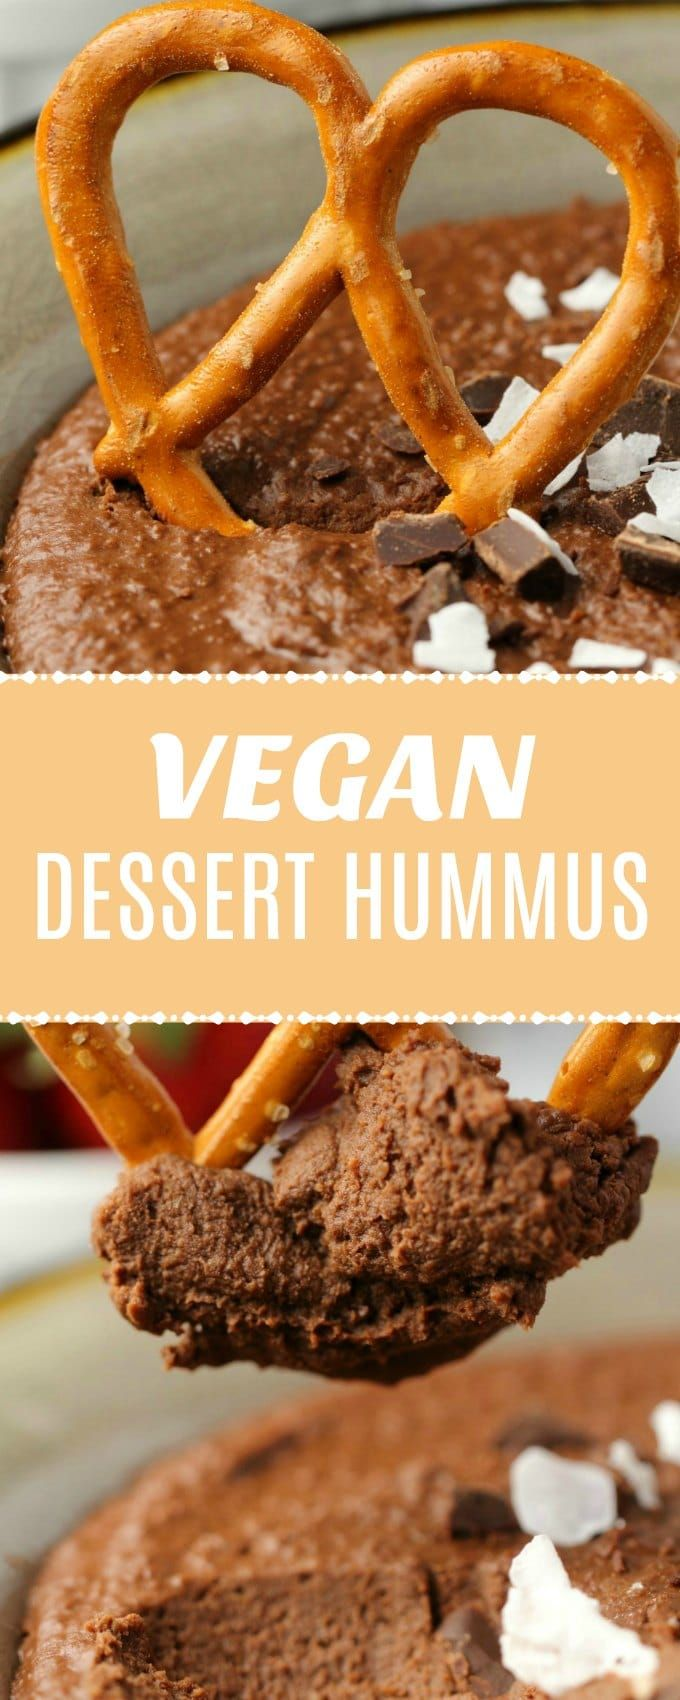 Delicious chocolate dessert hummus! Amazing as a dip for fresh fruit or pretzels, or just to eat with a spoon! High in protein and fiber, vegan and gluten-free! | lovingitvegan.com #fiberfruits